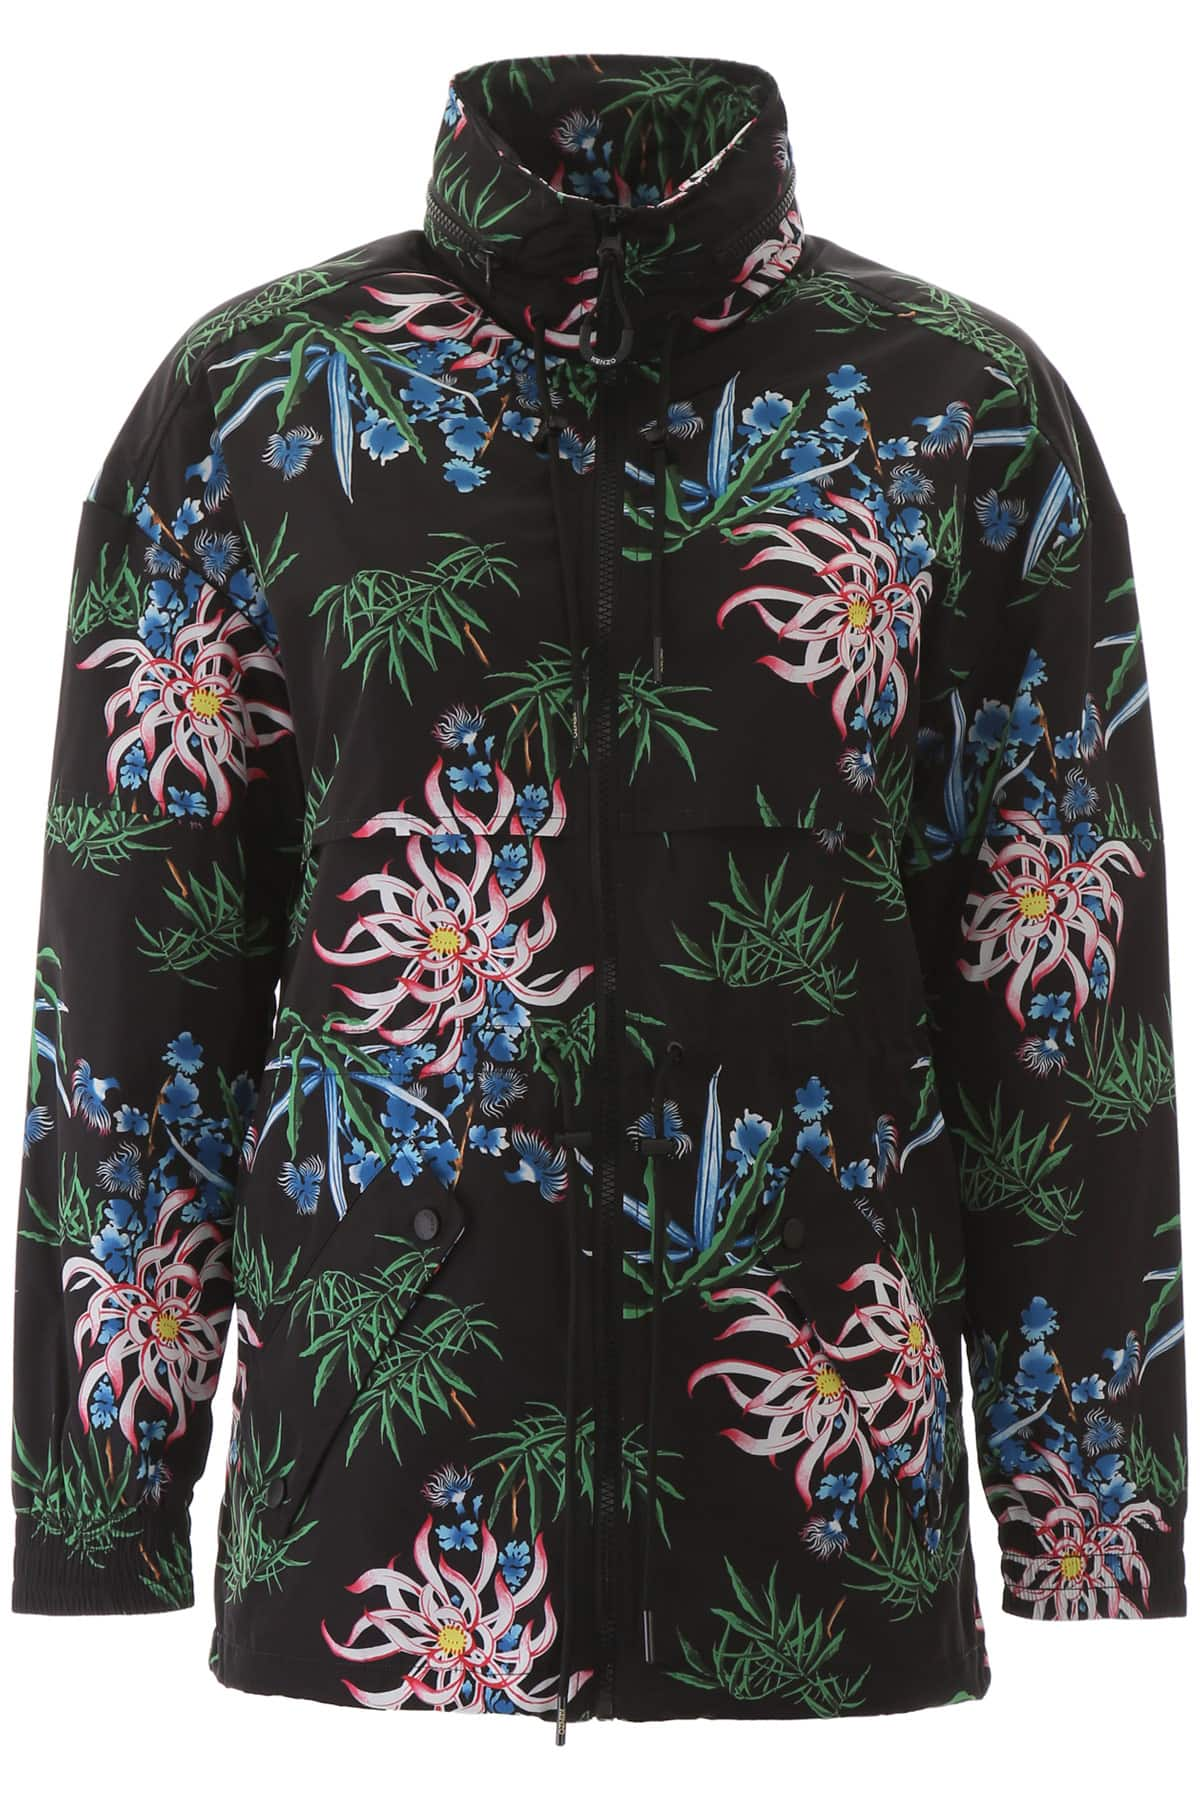 KENZO SEA LILY PRINT WINDBREAKER L Black, Blue, Red Technical